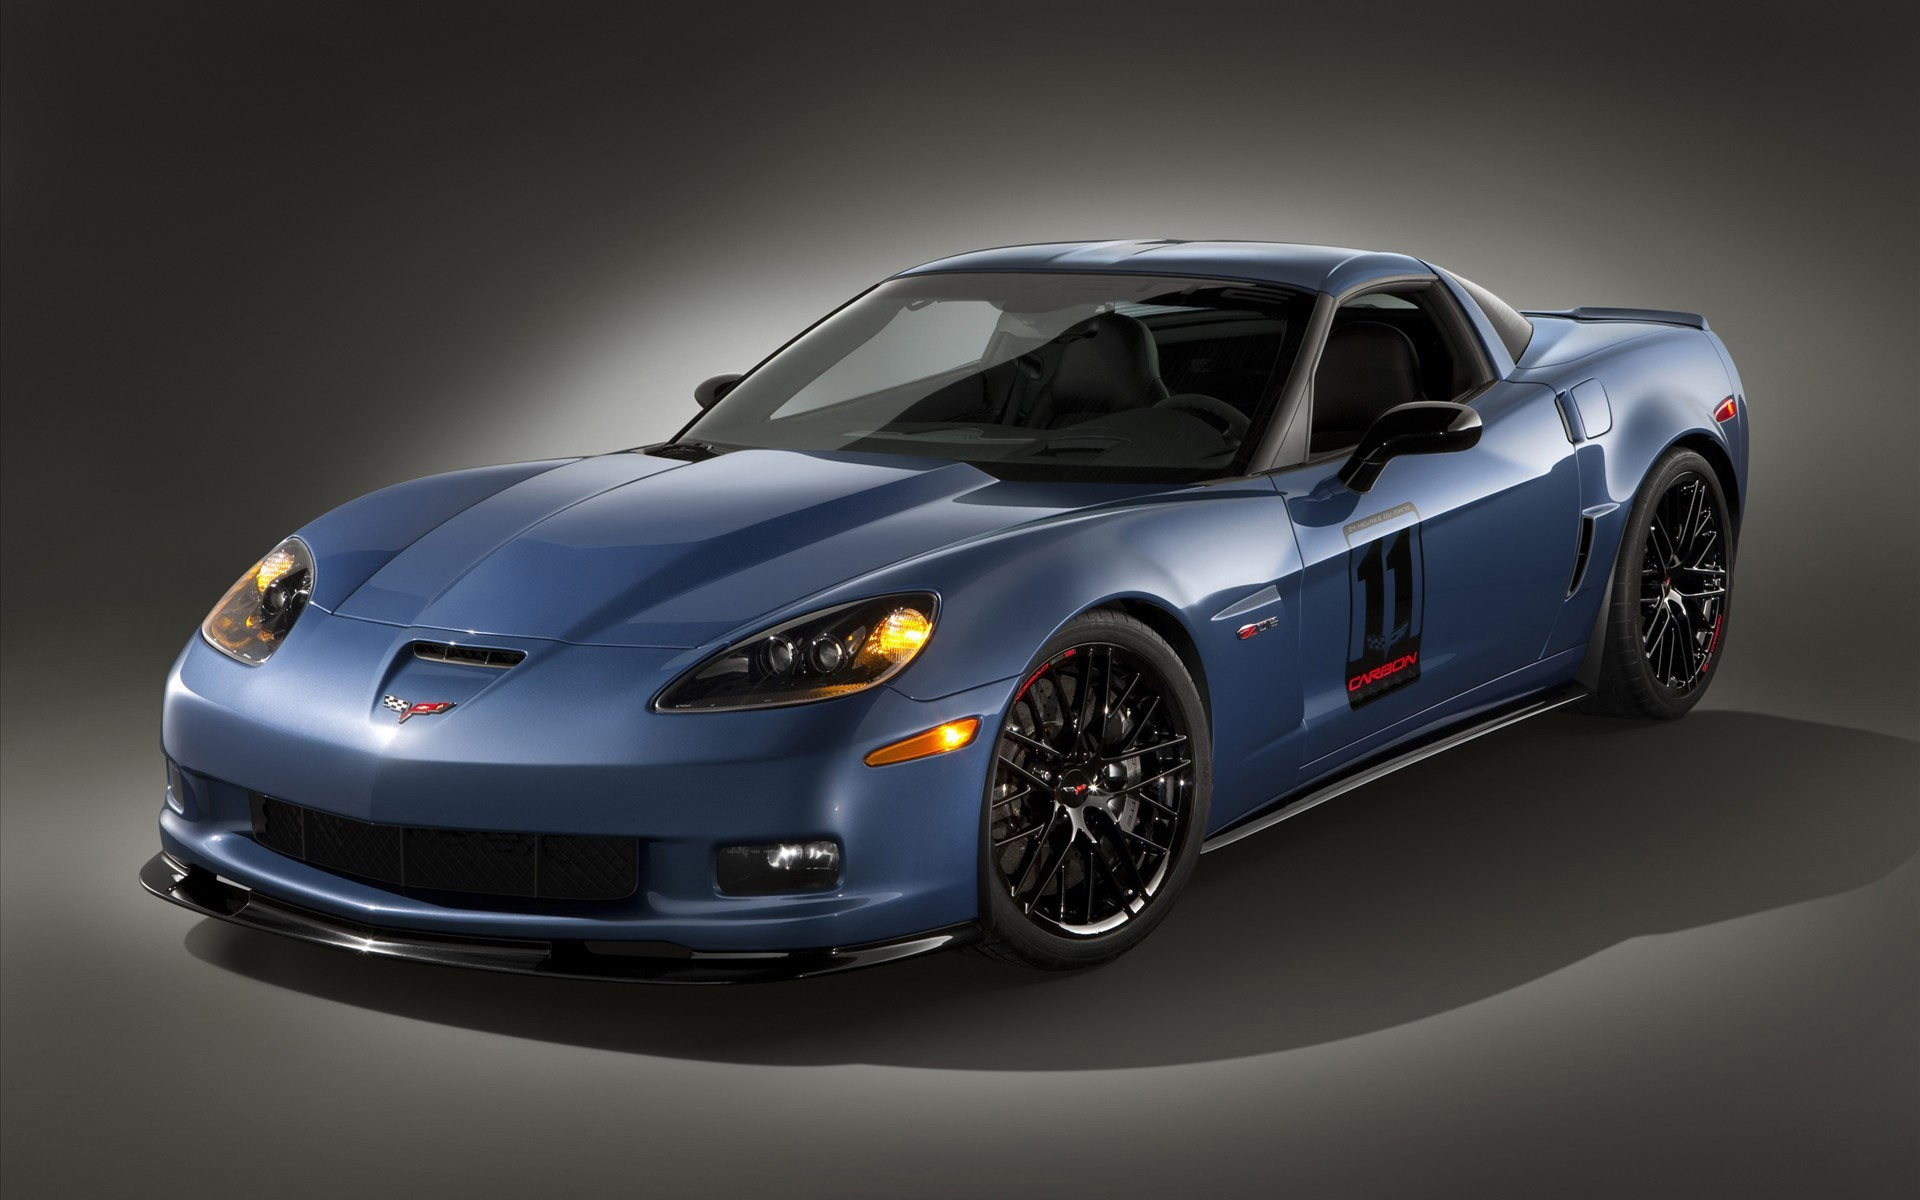 cars vehicles Corvette sports HD Wallpaper